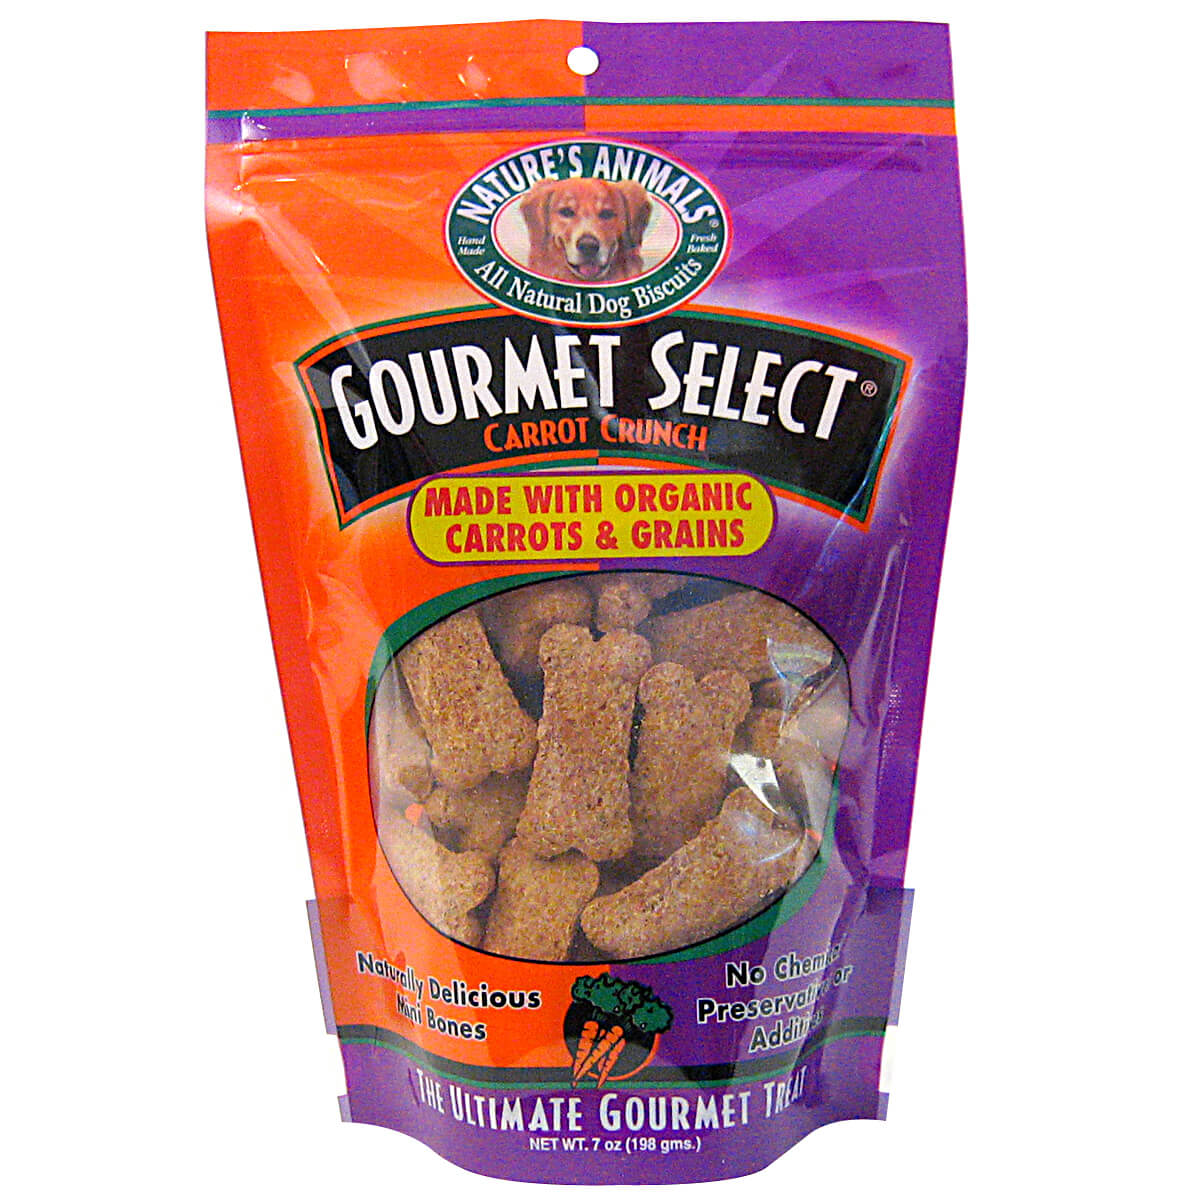 Natures Animals Gourmet Select Organic Mini Bones - All Natural, Bakery Fresh, USA Made Dog Treats